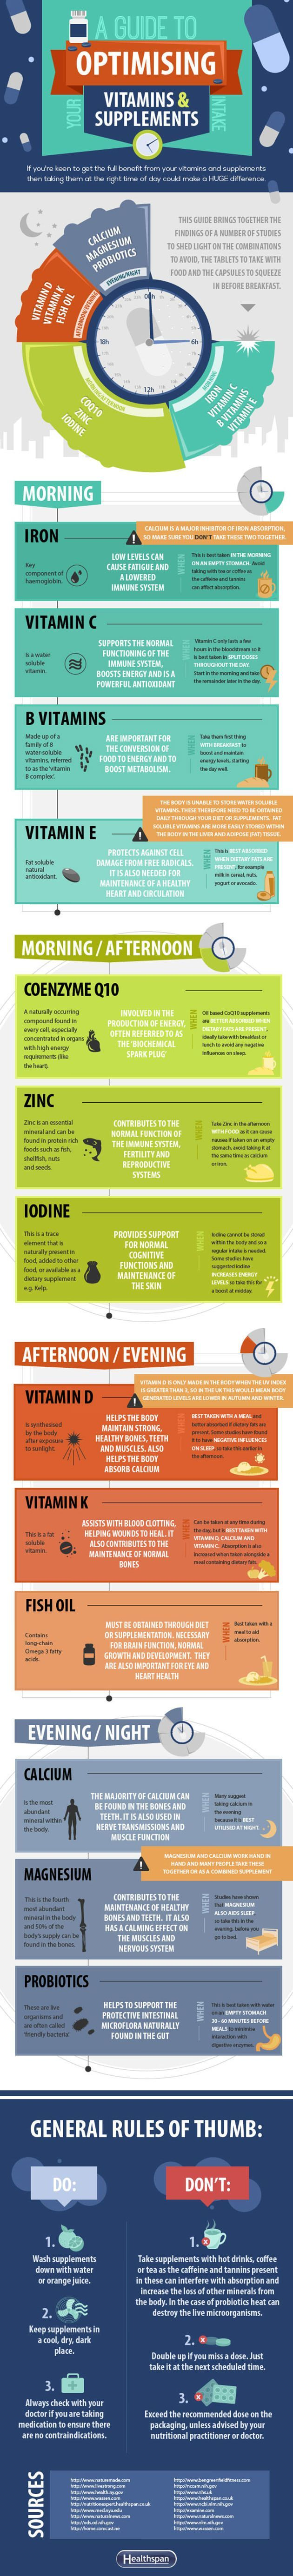 A Guide To Optimising Your Vitamins And Supplements Infographic #vitaminA #vitaminD #F4F